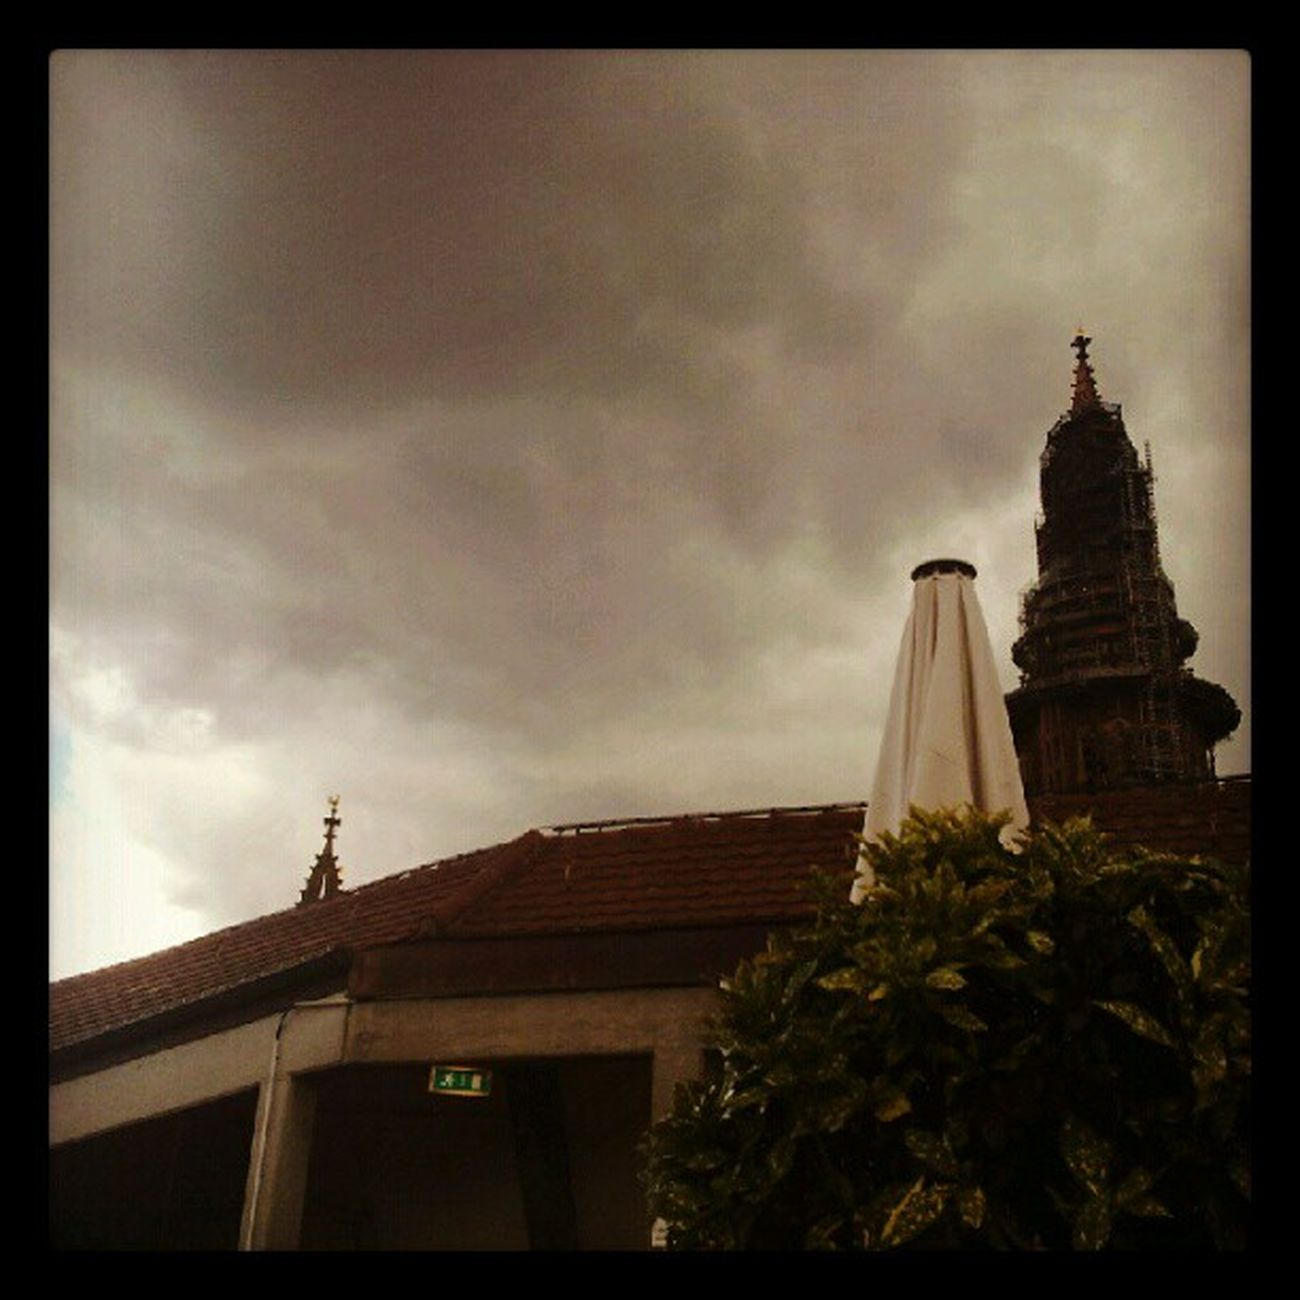 Rainy clouds about to hit Freiburg Germany